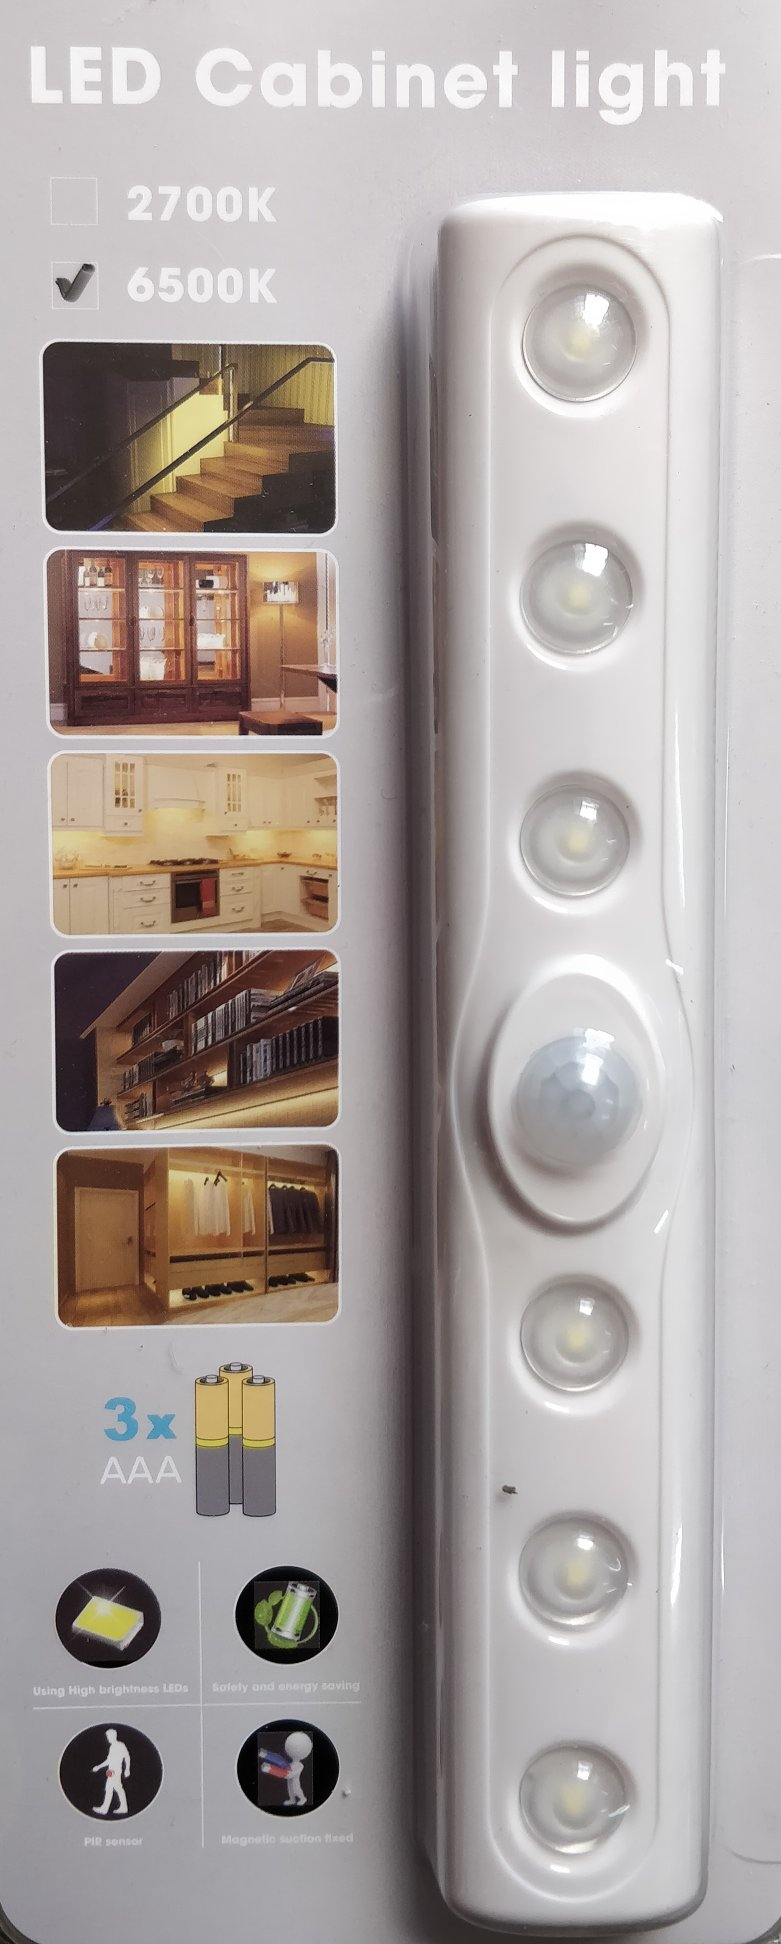 LED Motion Detection Cabinet Light